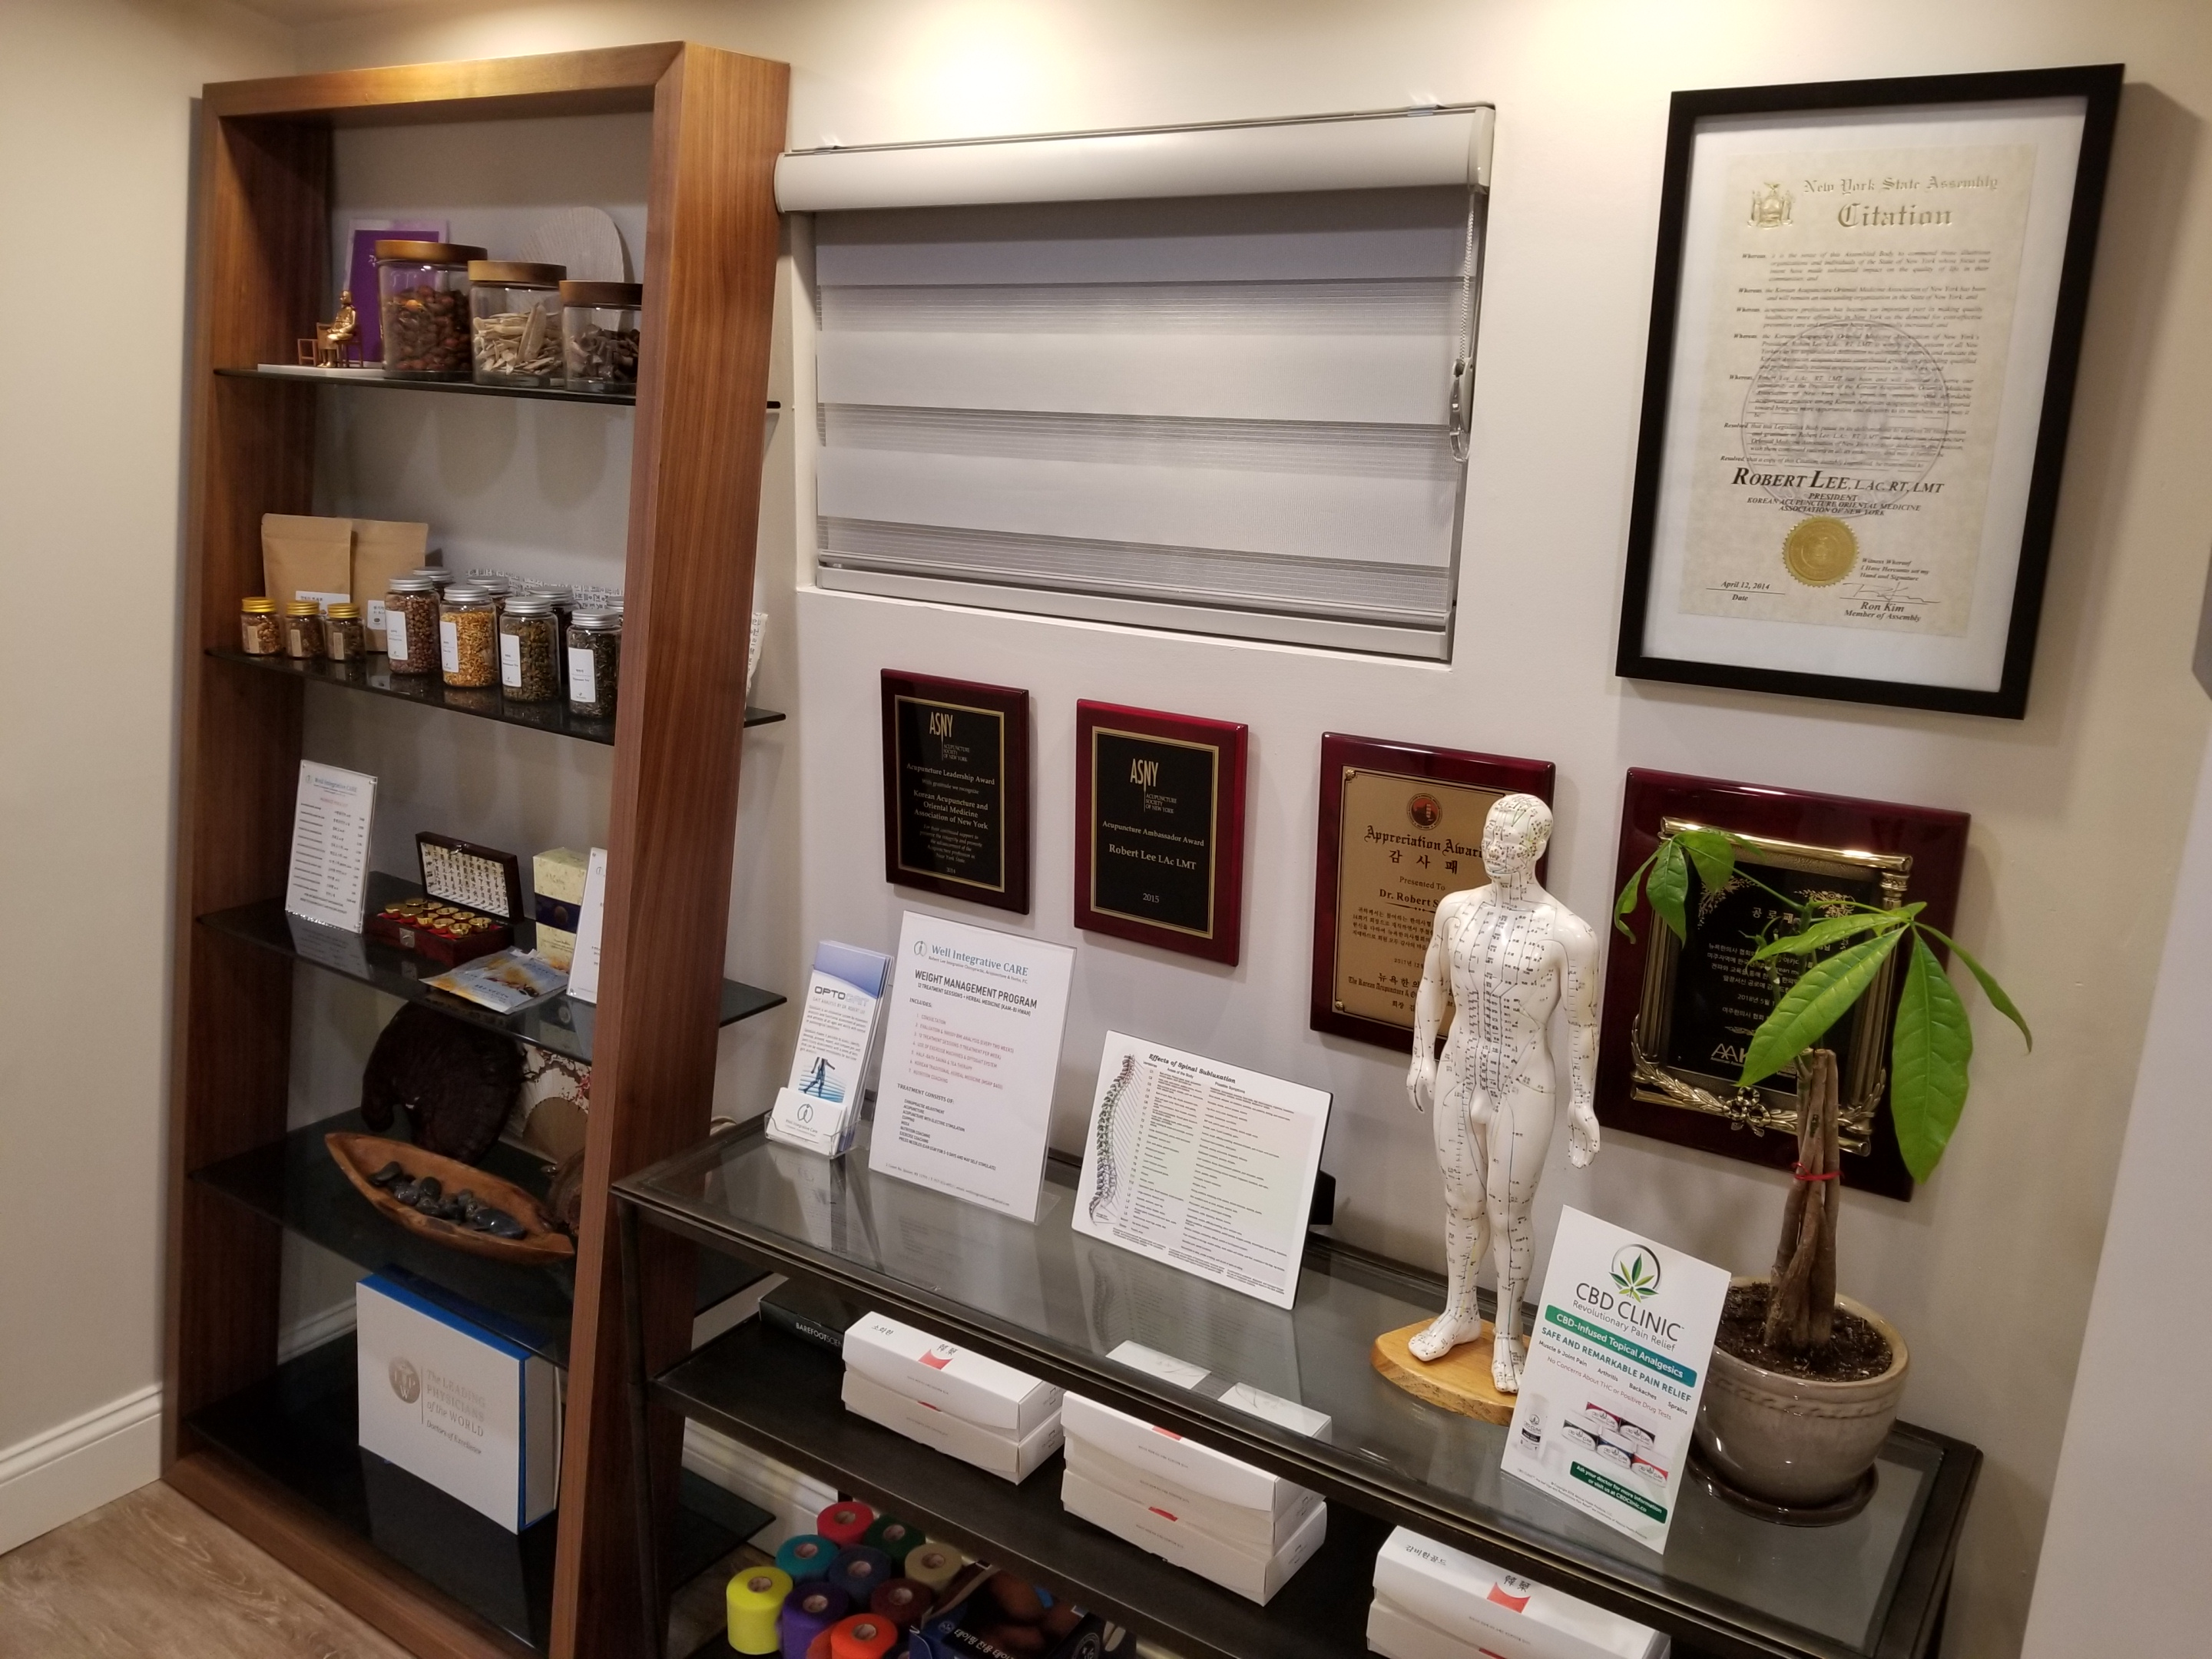 Well Integrative Care Chiropractic, Acupuncture & Rehab - Dr Robert Lee, DC, L.Ac image 1